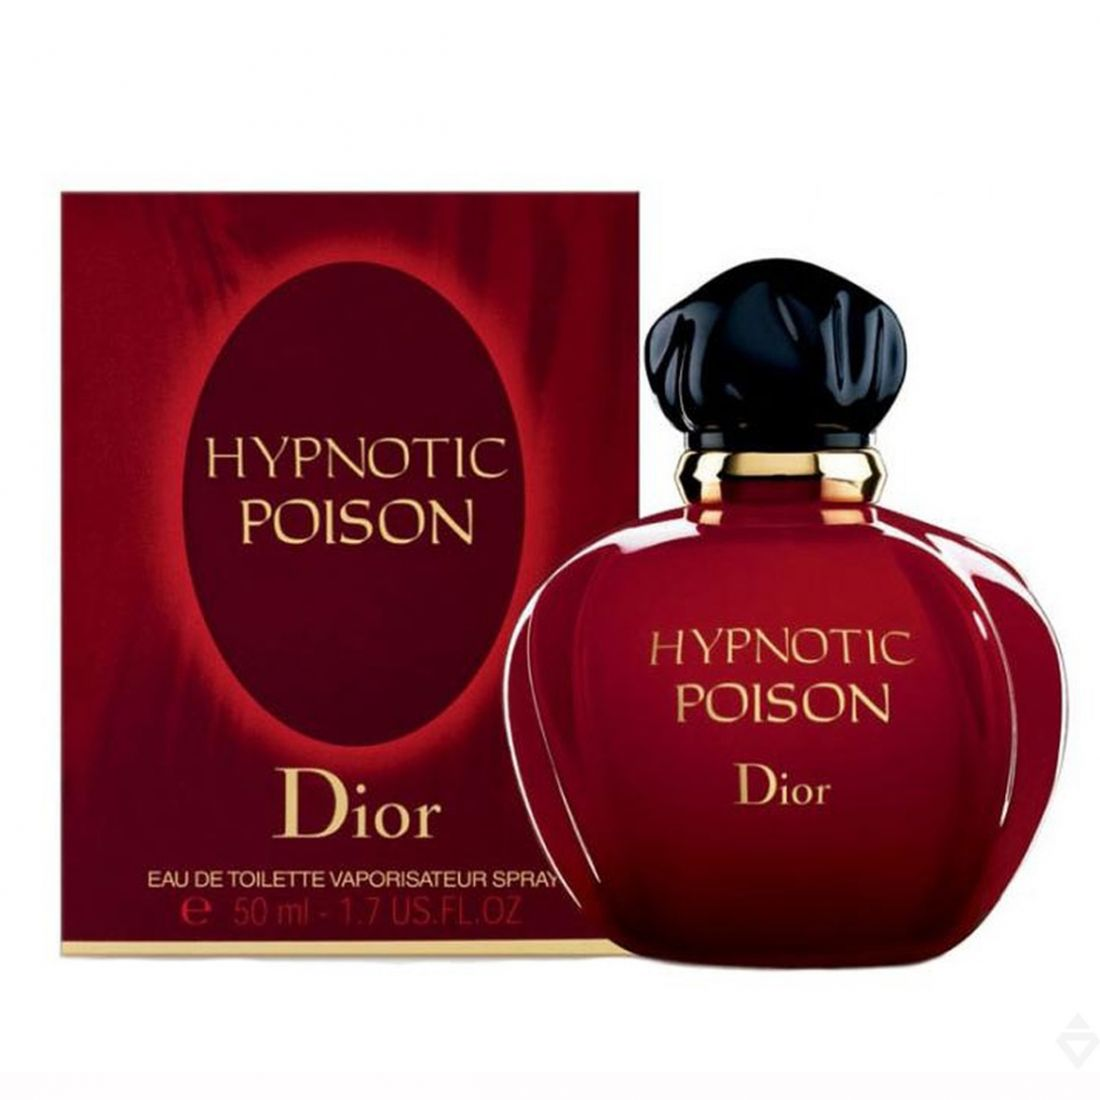 Christian Dior - Hypnotic Poison, 50 ml